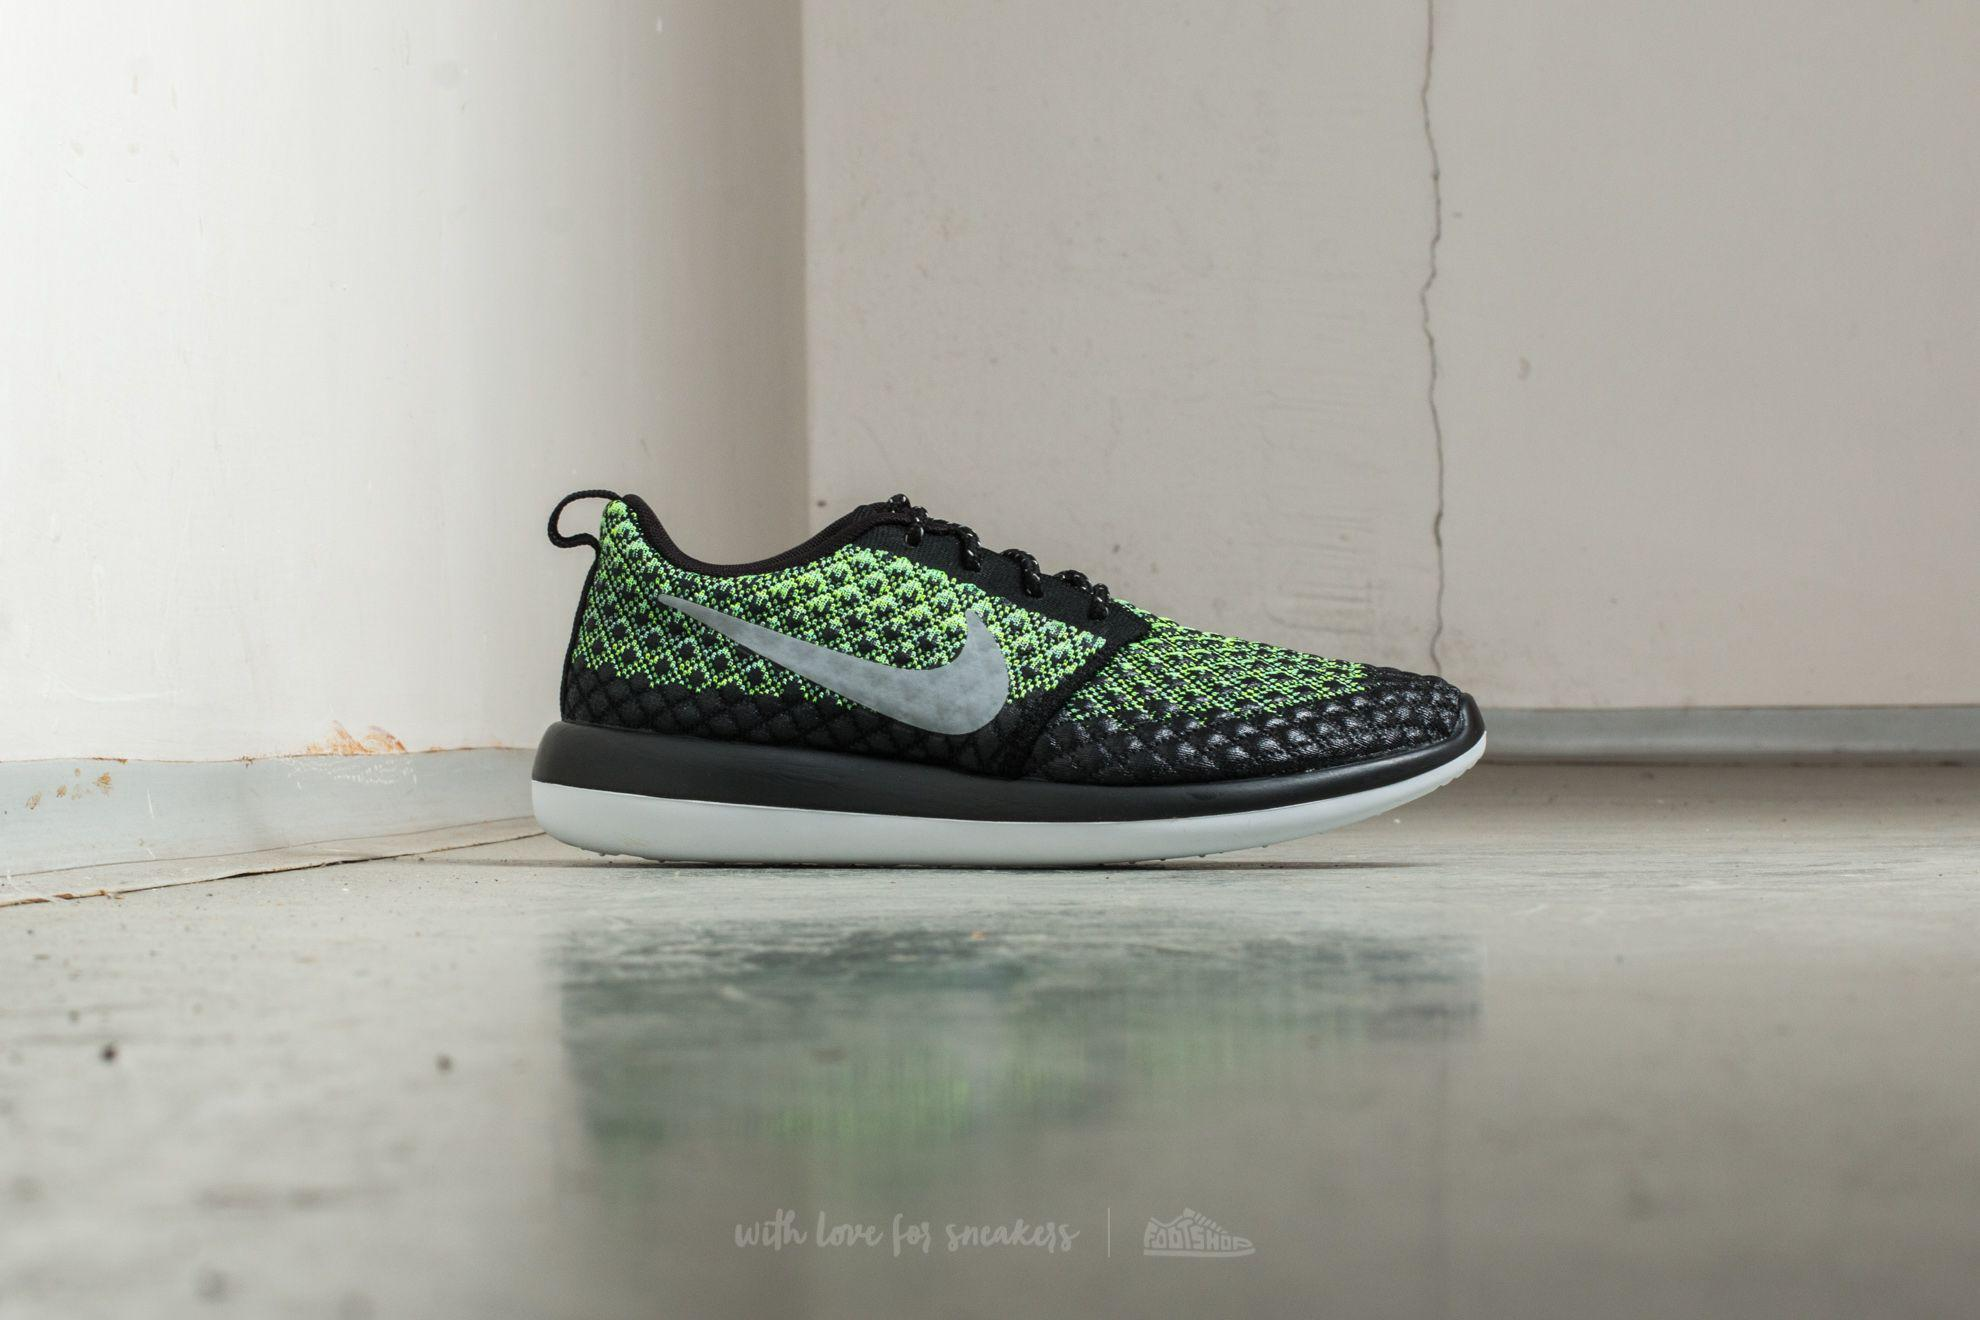 new arrivals 74fe1 3c574 Lyst - Nike Roshe Two Flyknit 365 Volt  Wolf Grey-green Glow in ...